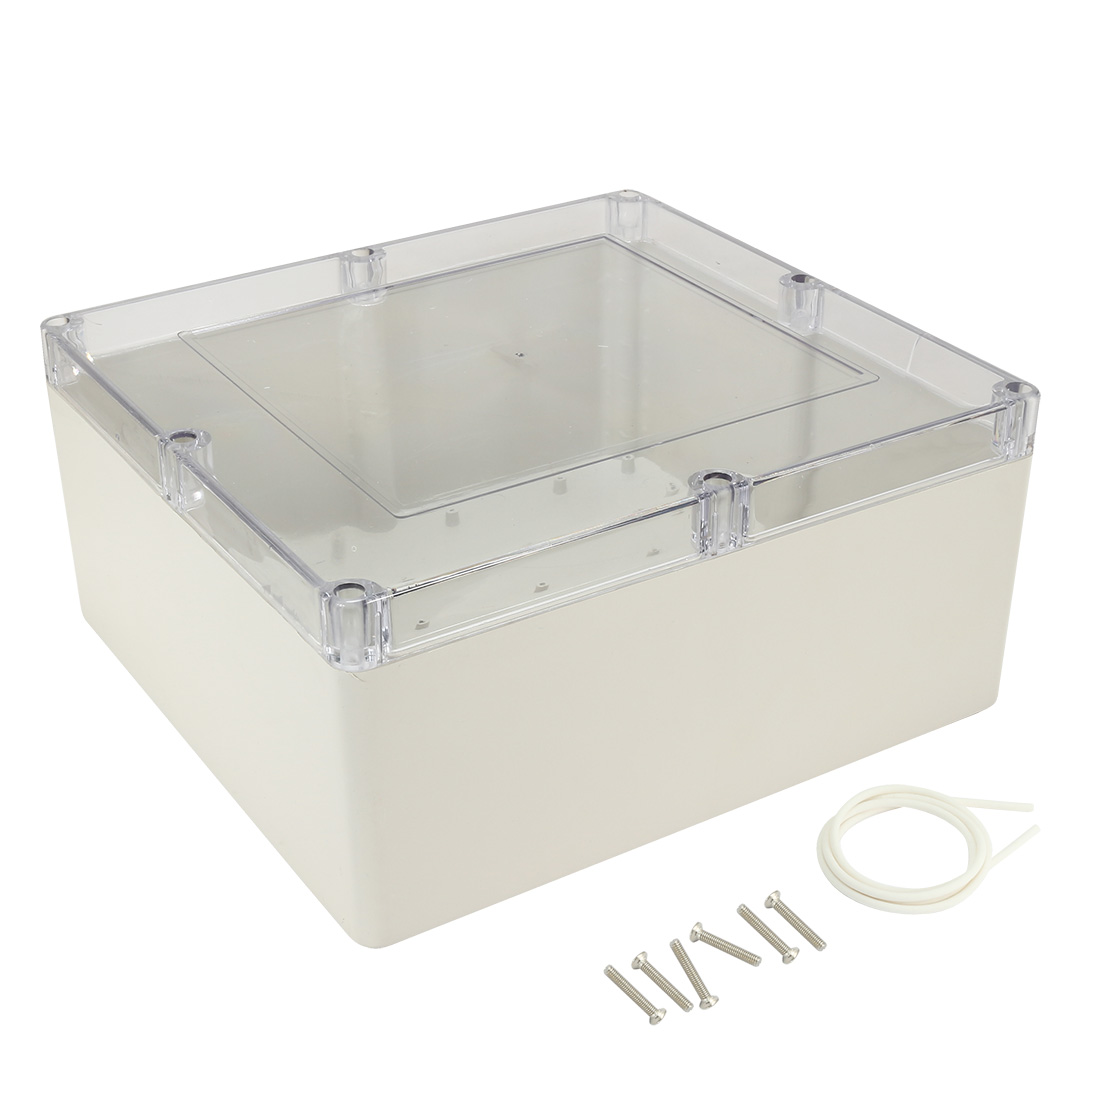 "12""x11""x5.5""(300mmx280mmx140mm) ABS Junction Box Universal Project Enclosure w PC Transparent Cover"